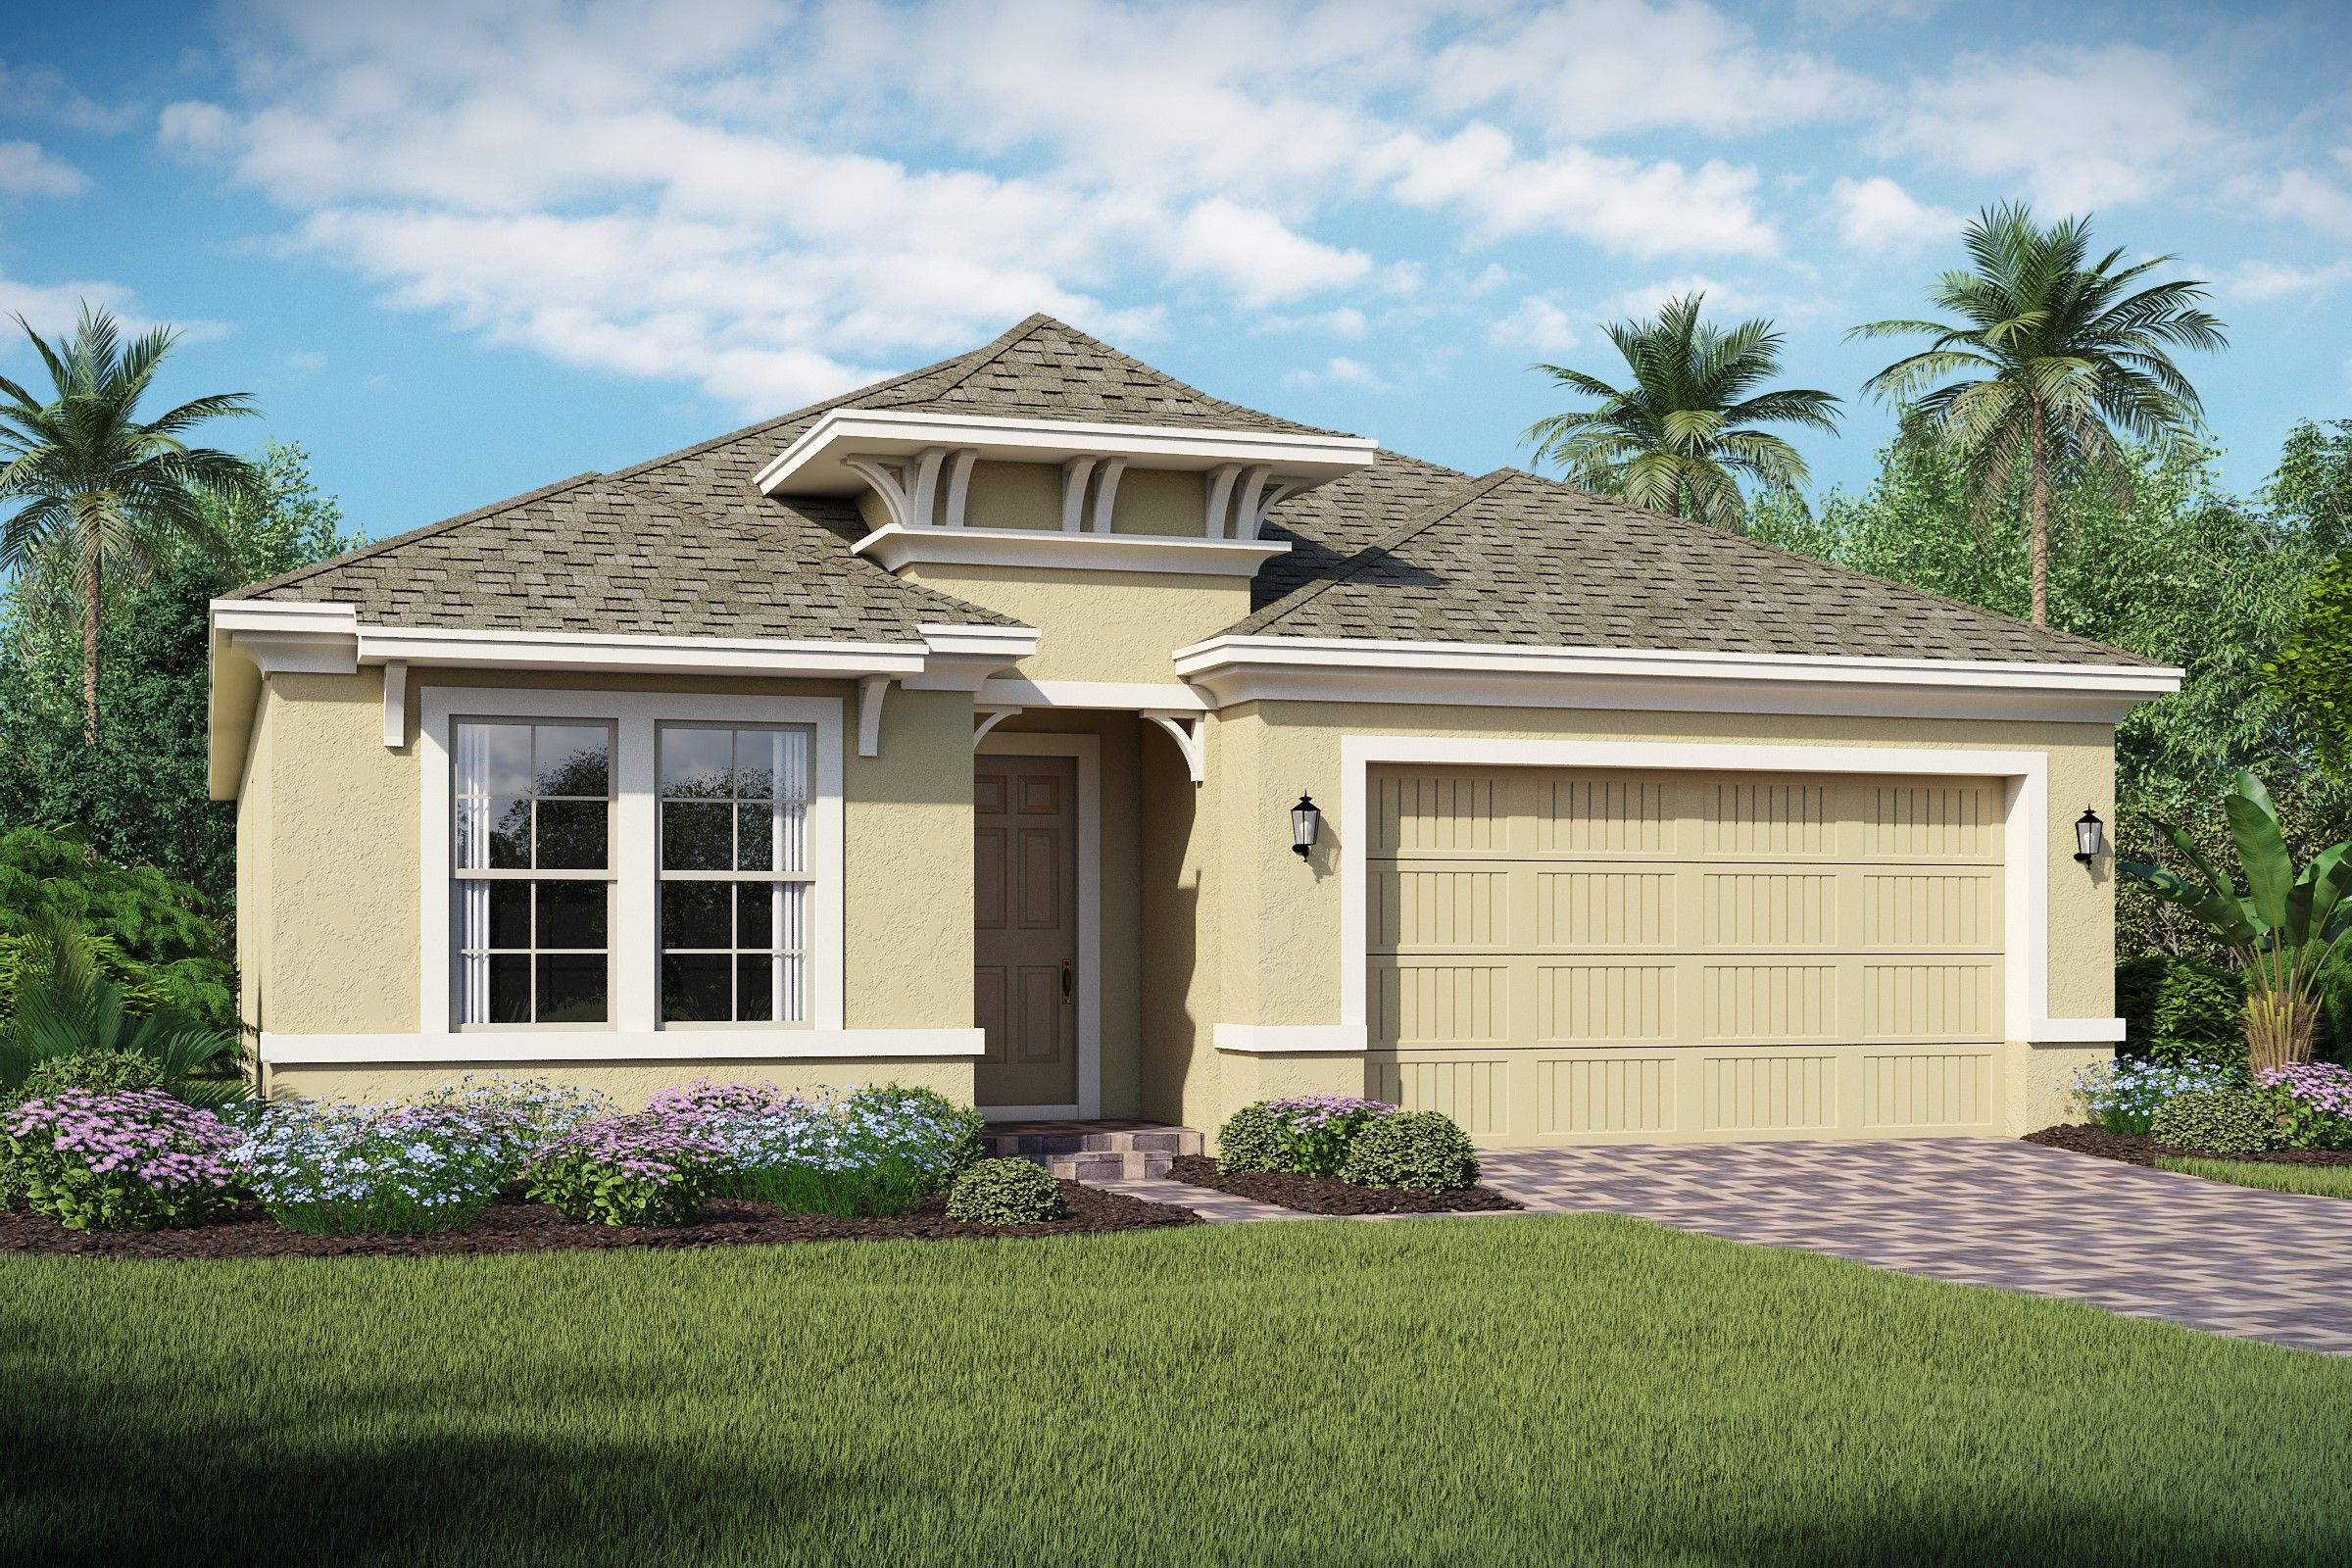 Single Family for Sale at Saint Lucia 4902 Tortuga Street, Homesite 167 St. Cloud, Florida 34771 United States